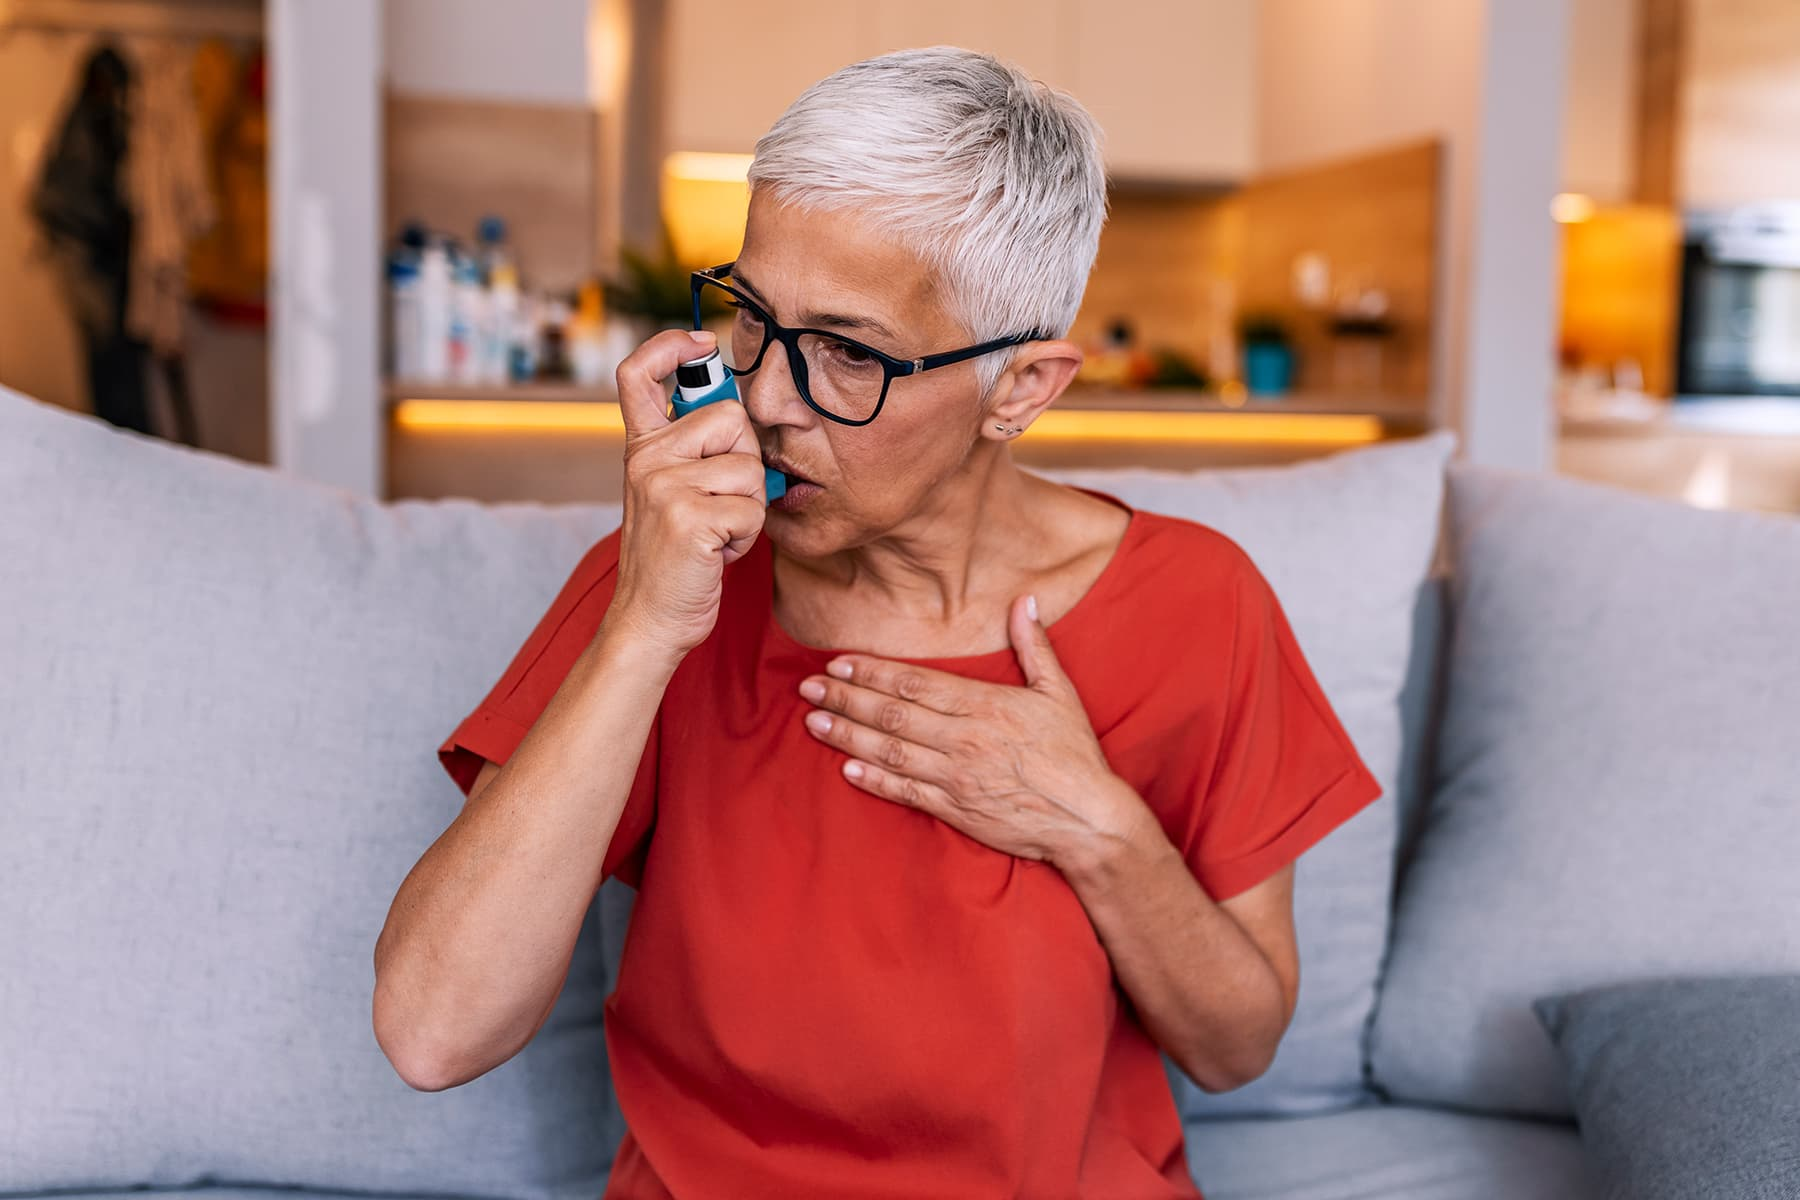 Asthma and Coronavirus: How to Prepare and When to Call a Doctor